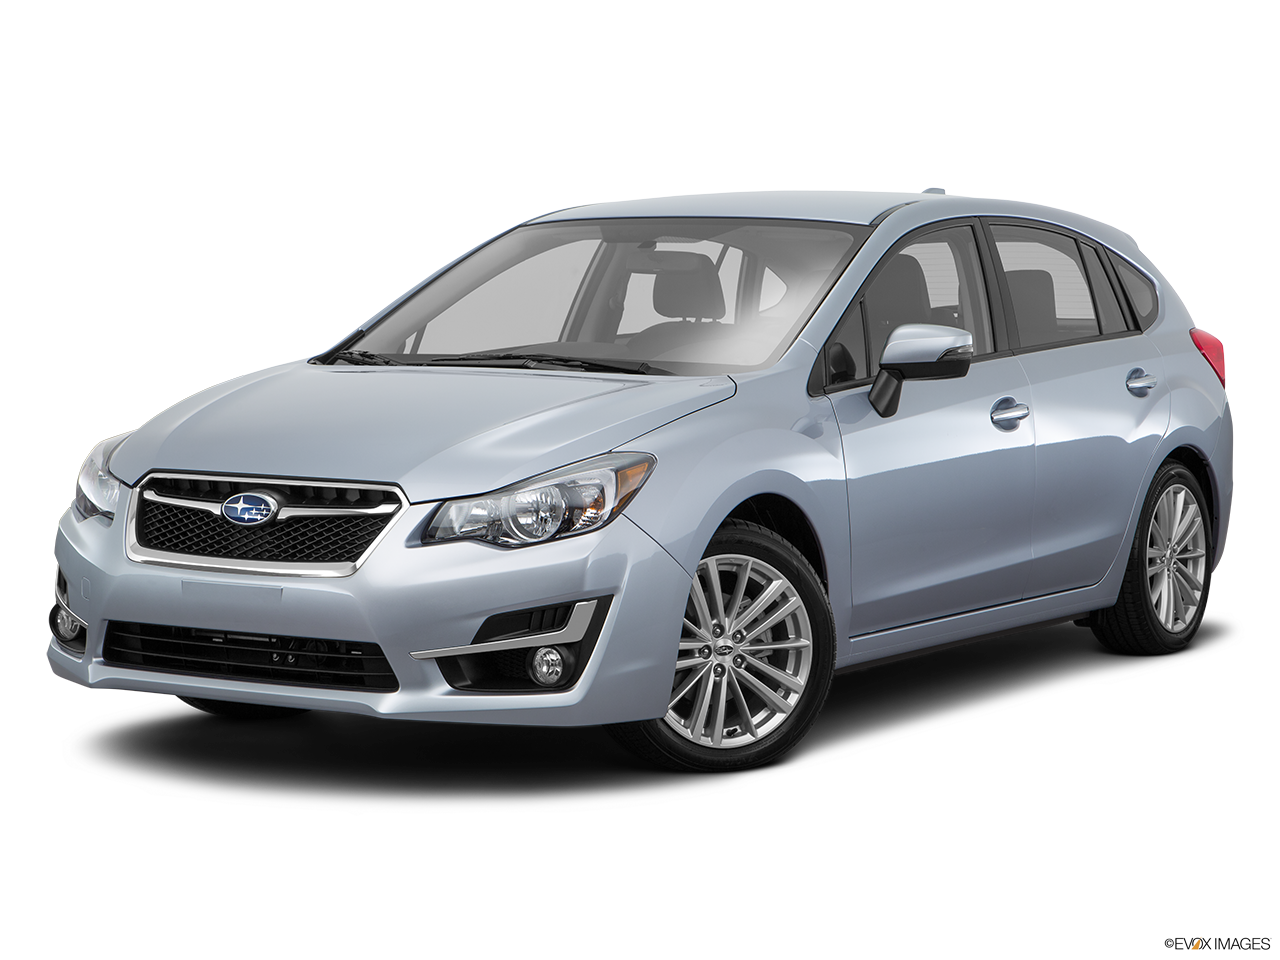 Test Drive A 2016 Subaru Impreza at Galpin Subaru in Los Angeles